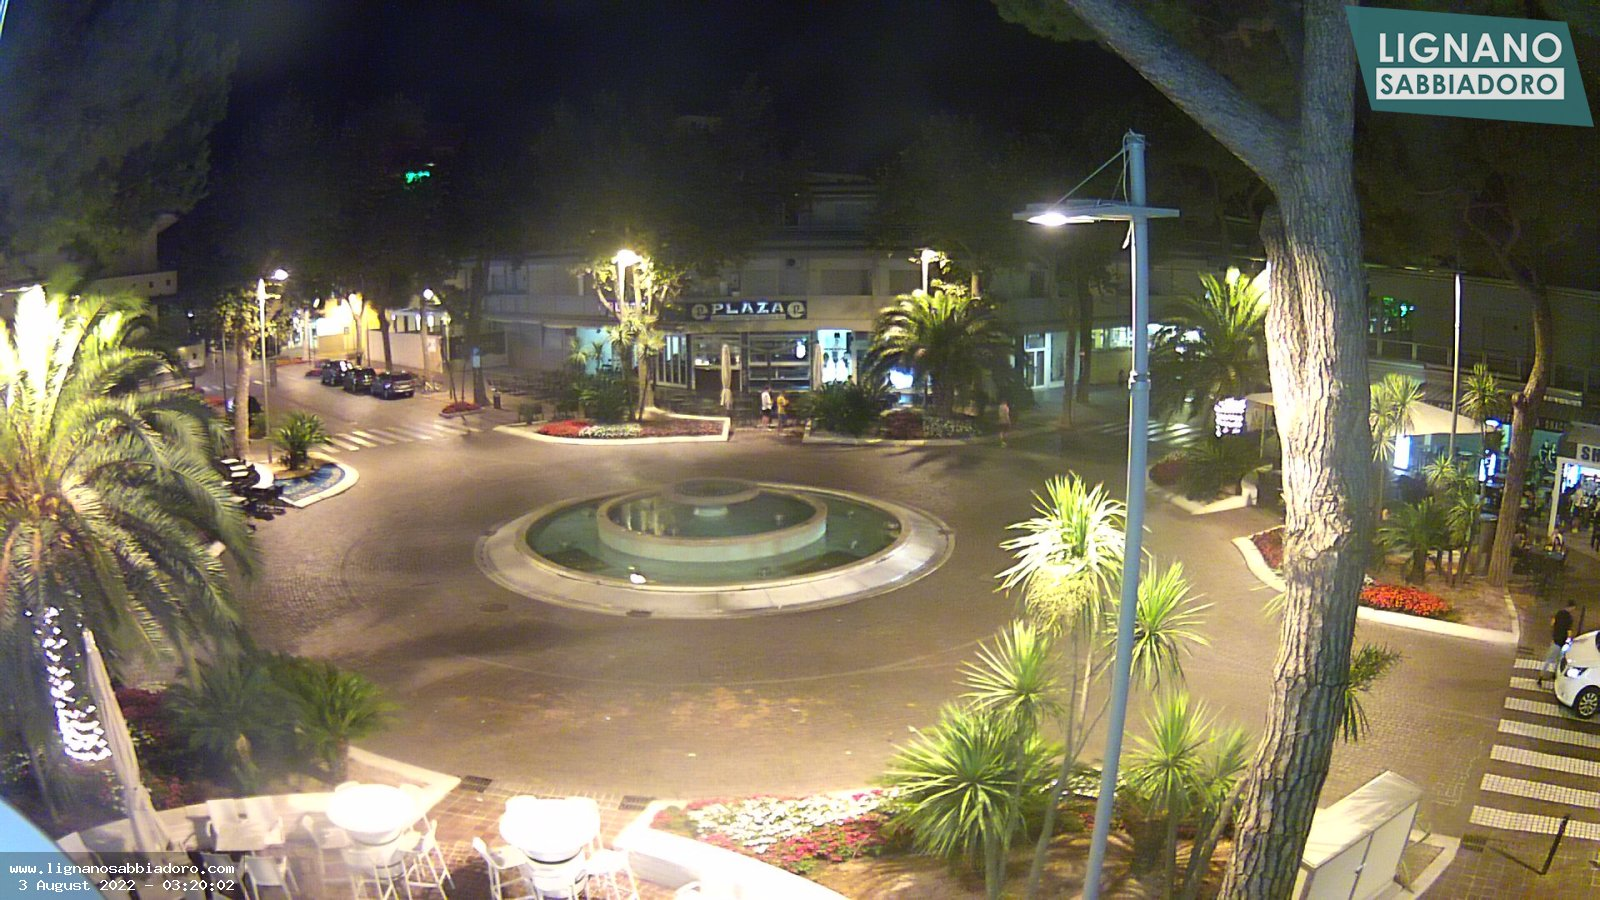 Webcam Lignano in real time - Direct live streaming